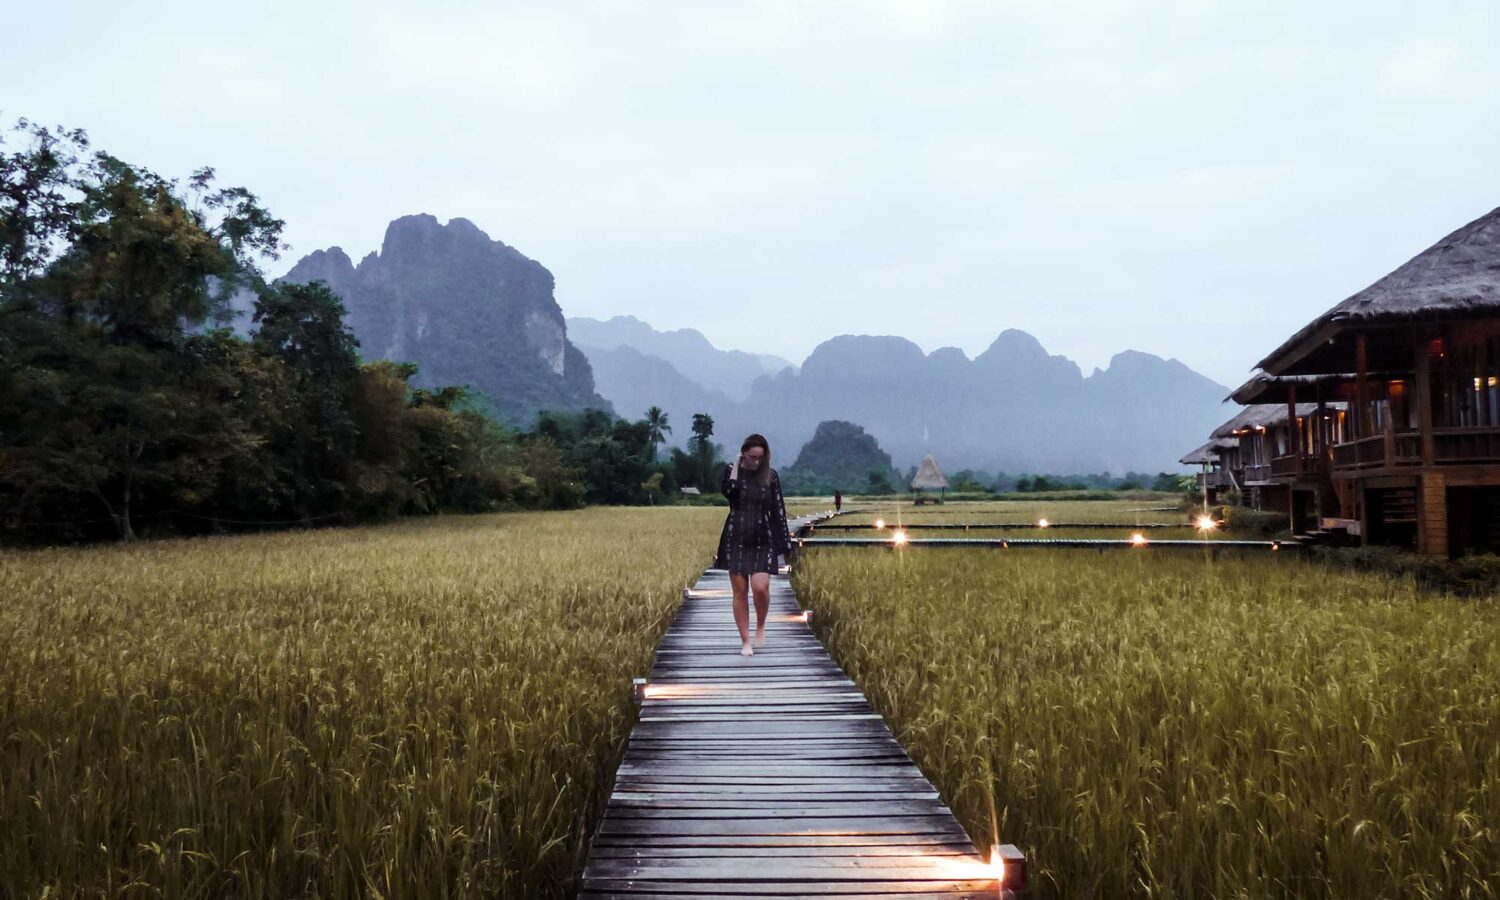 Staying among the Vang Vieng rice fields at Vieng Tara Villa